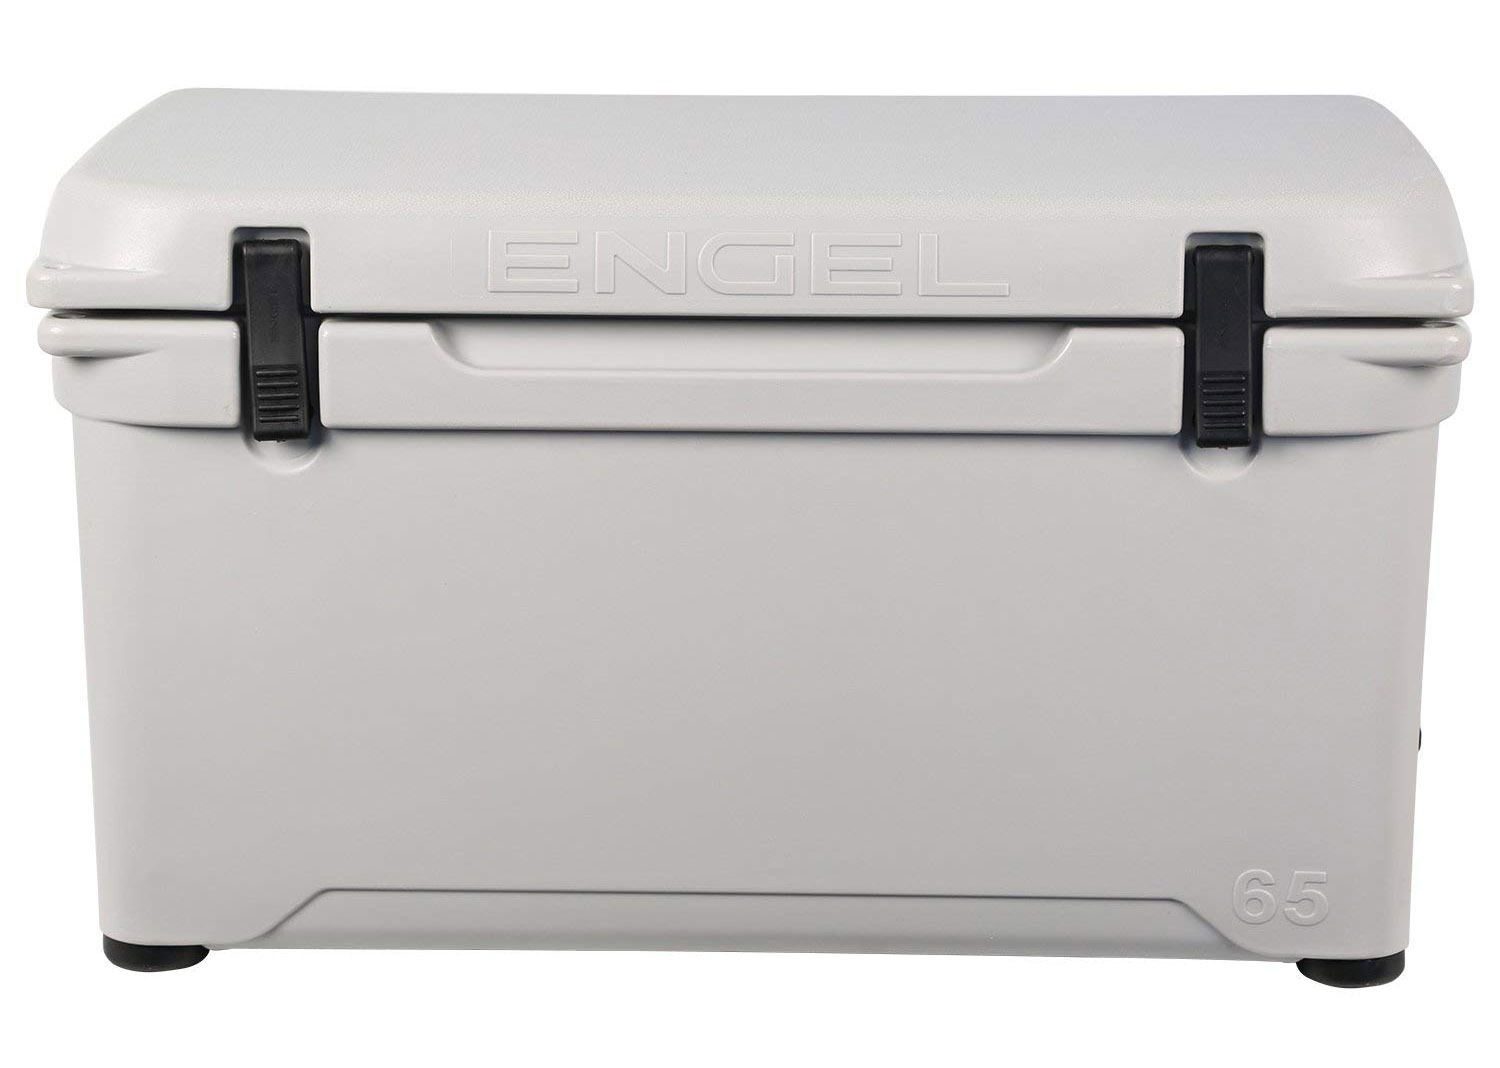 Engel Coolers High